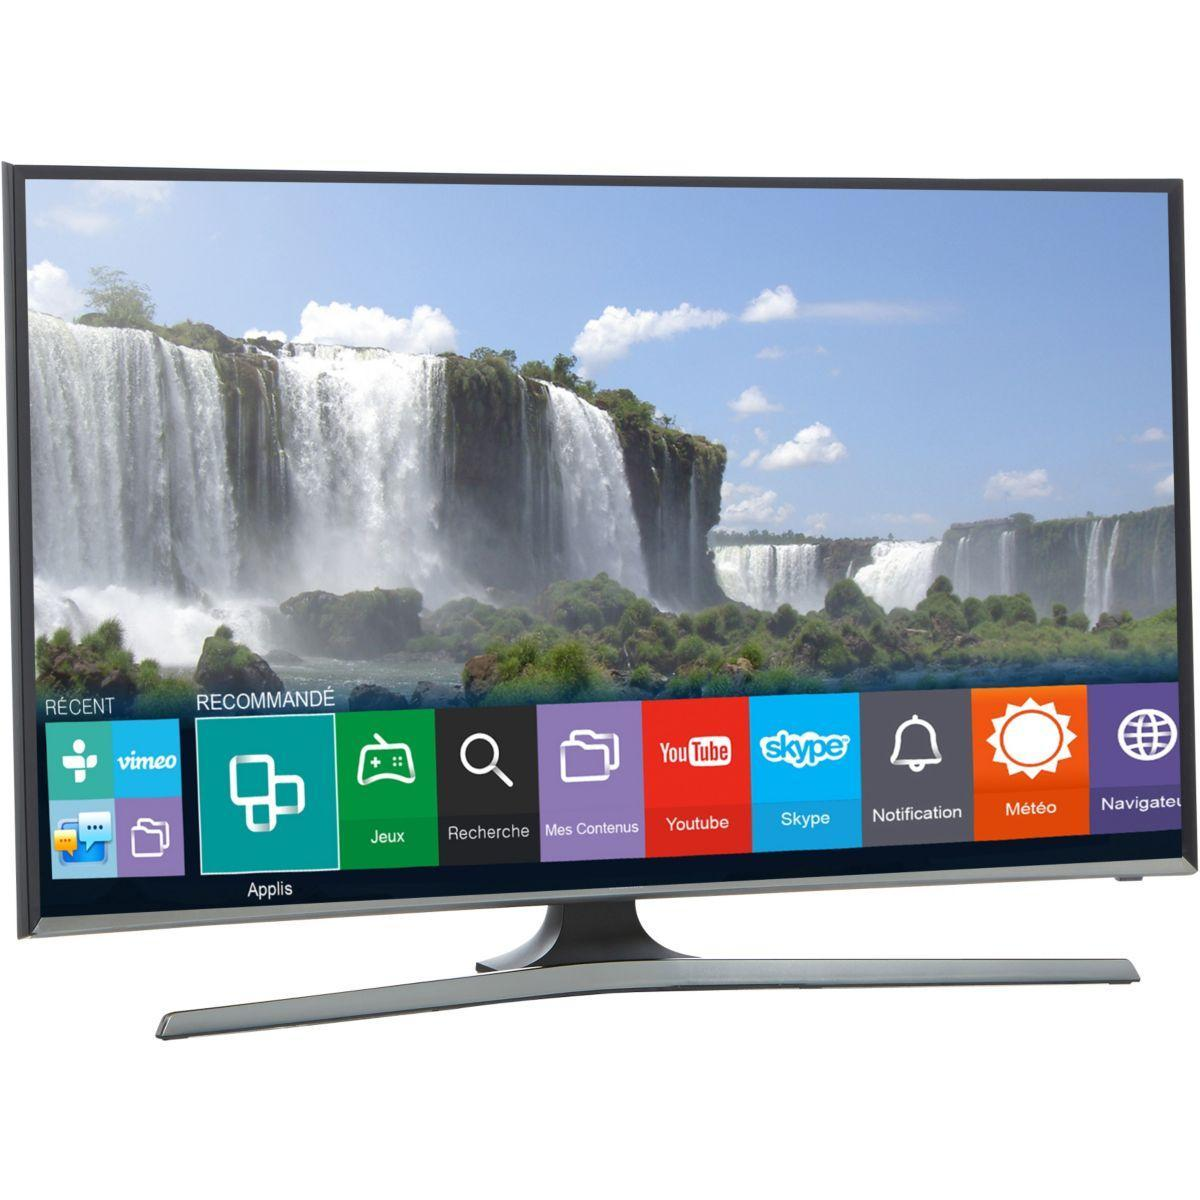 smart tv led full hd 101 cm samsung ue40j6300awxzf incurv e reconditionn back market. Black Bedroom Furniture Sets. Home Design Ideas